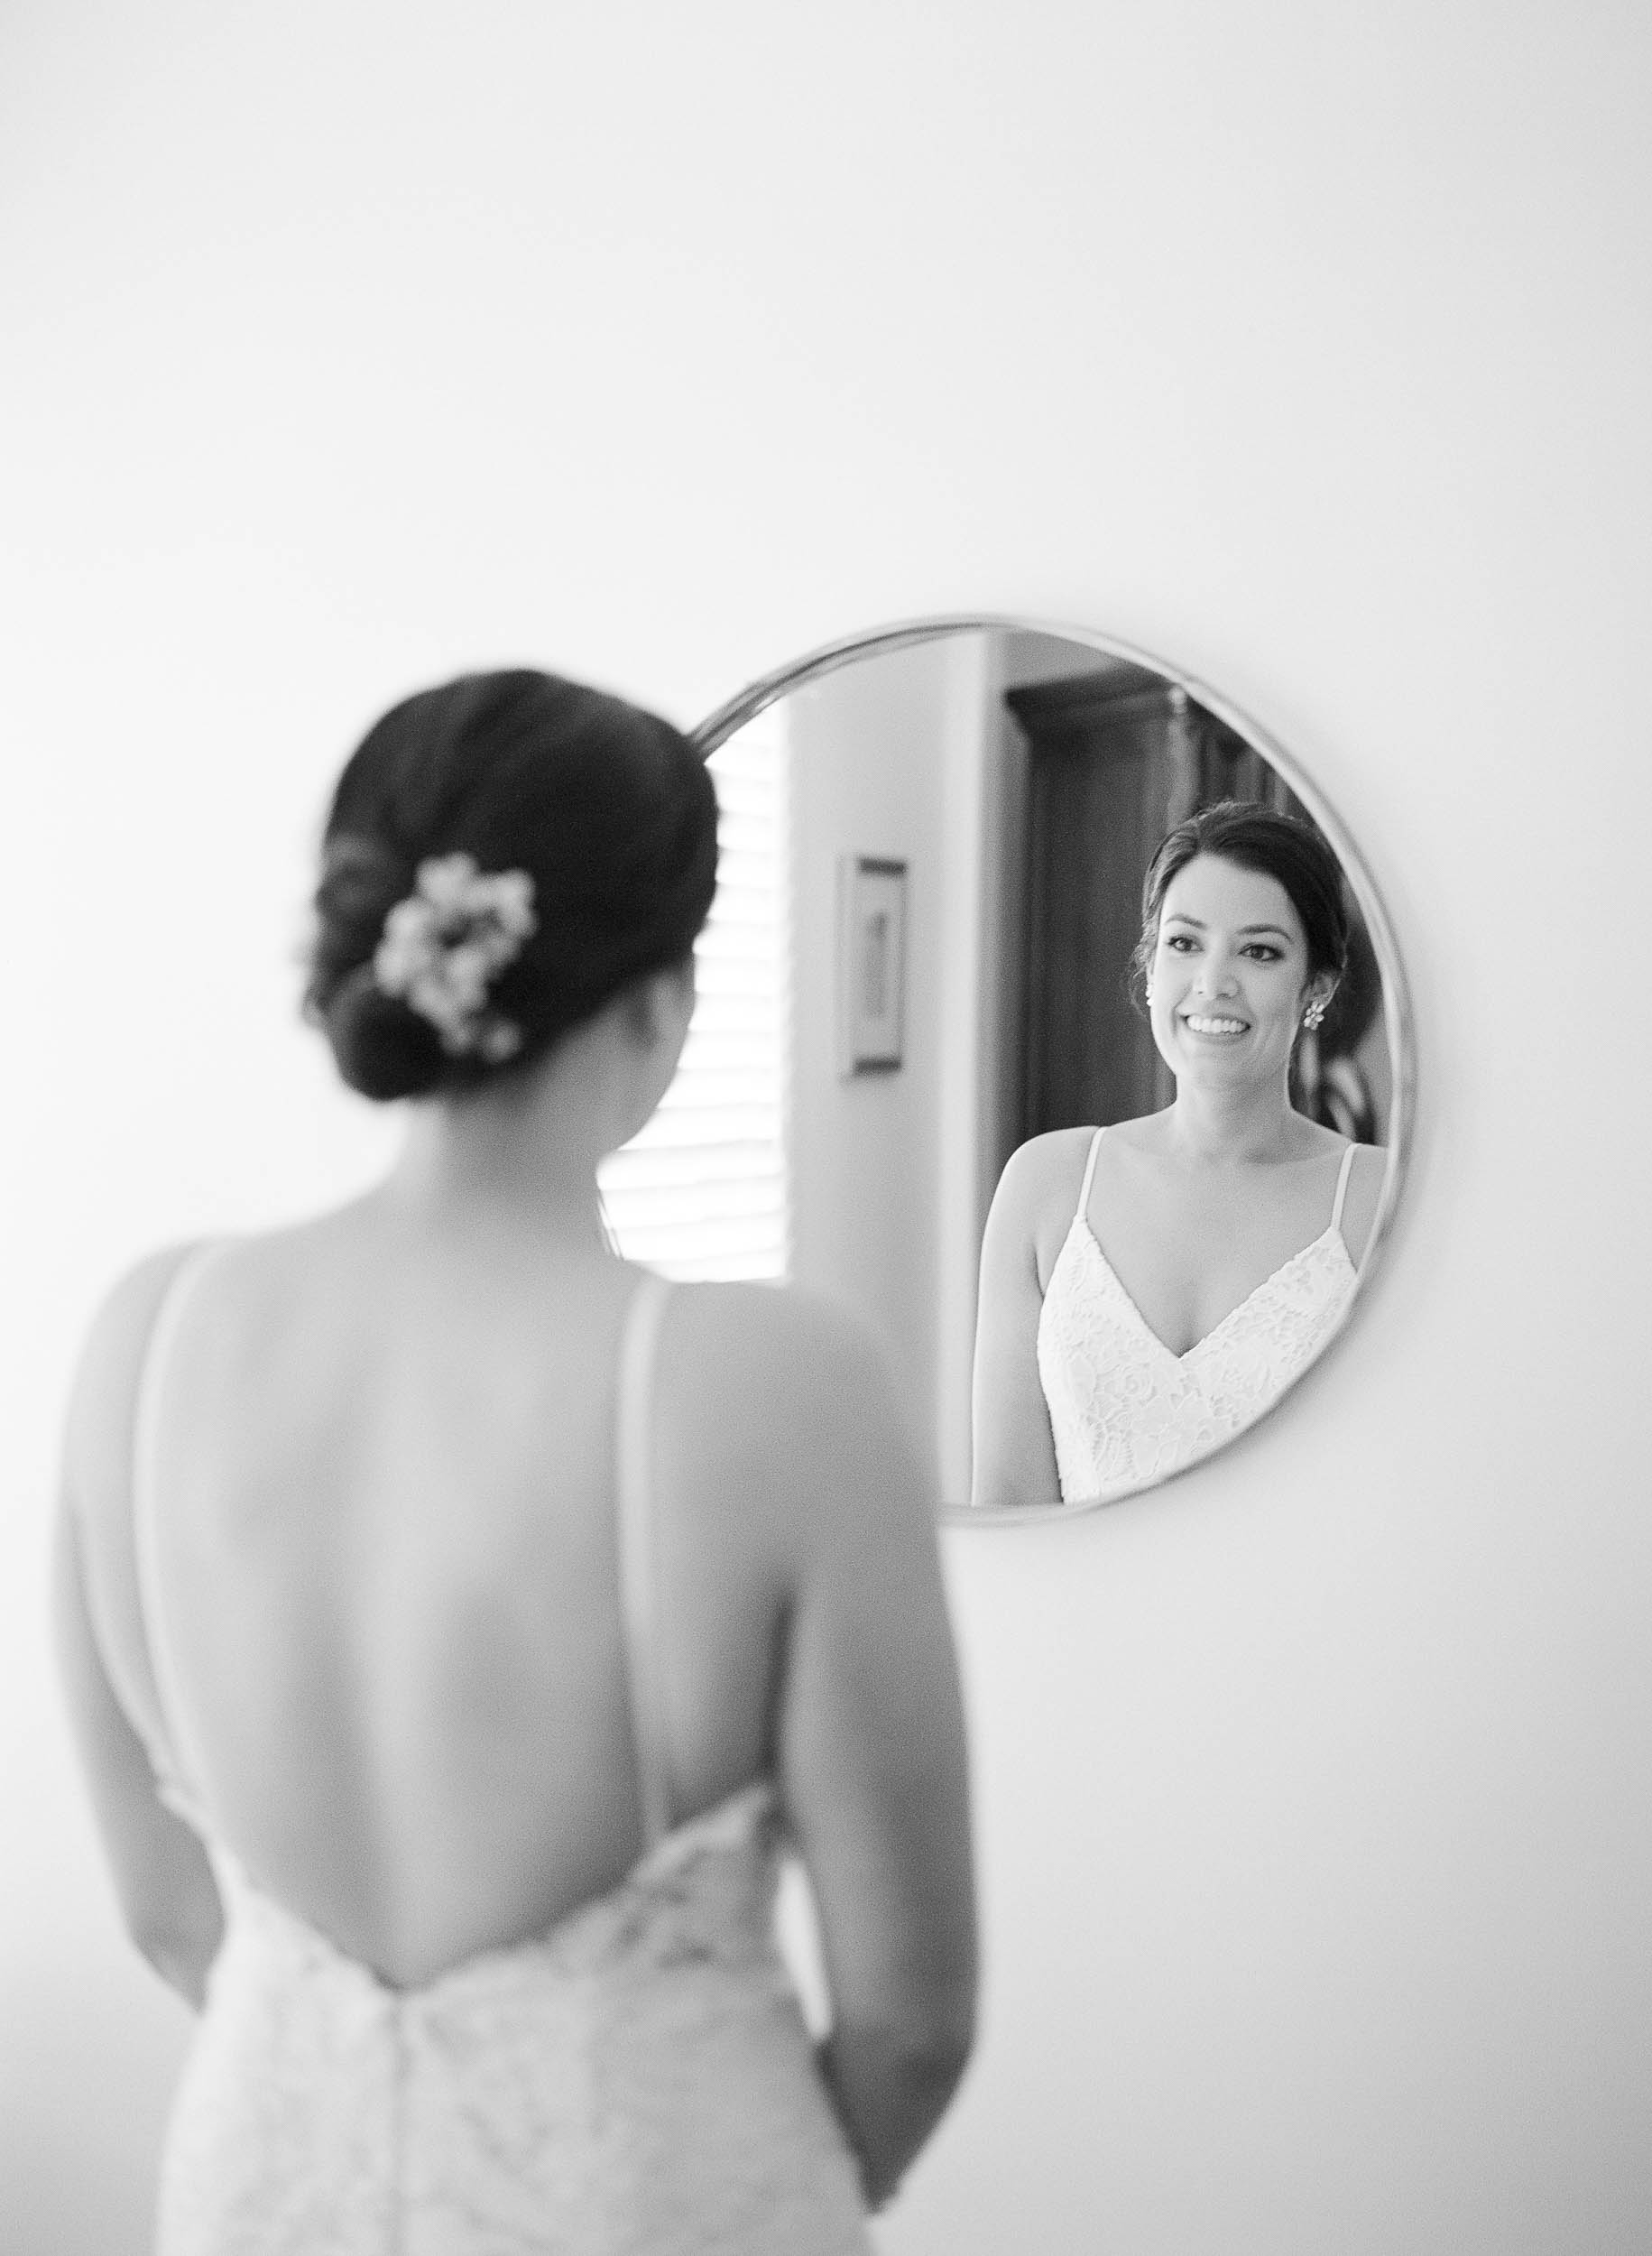 052519_A+J_Vine Hill House Wedding_Buena Lane Photography_215476_0009-2.jpg